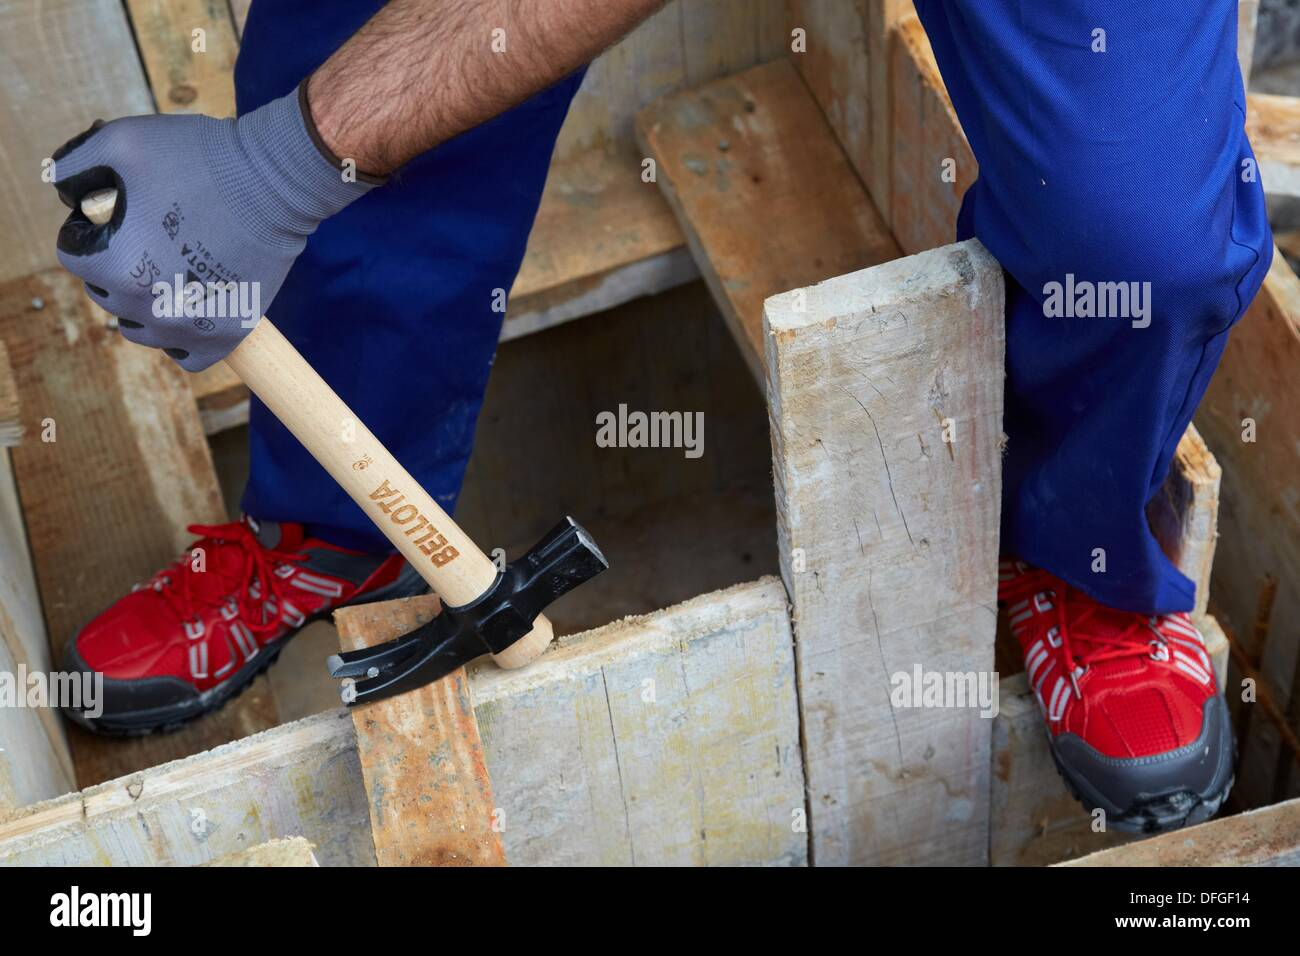 roofing hammer hand tools for construction construction worker